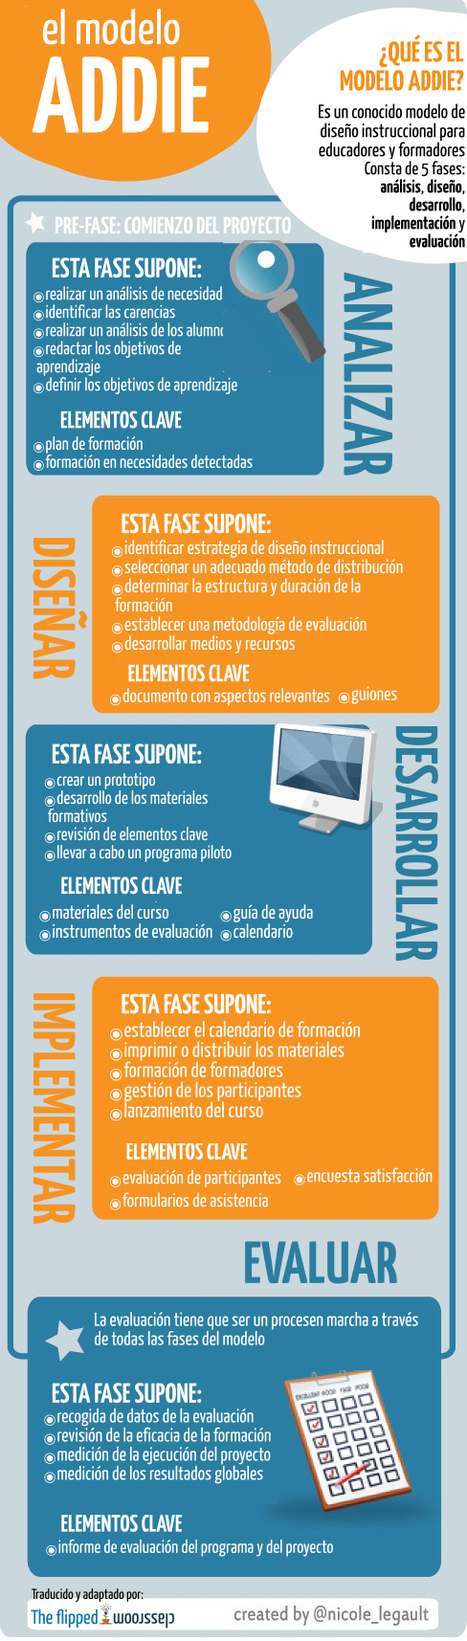 Un infográfico sobre el modelo ADDIE | eduvirtual | Scoop.it